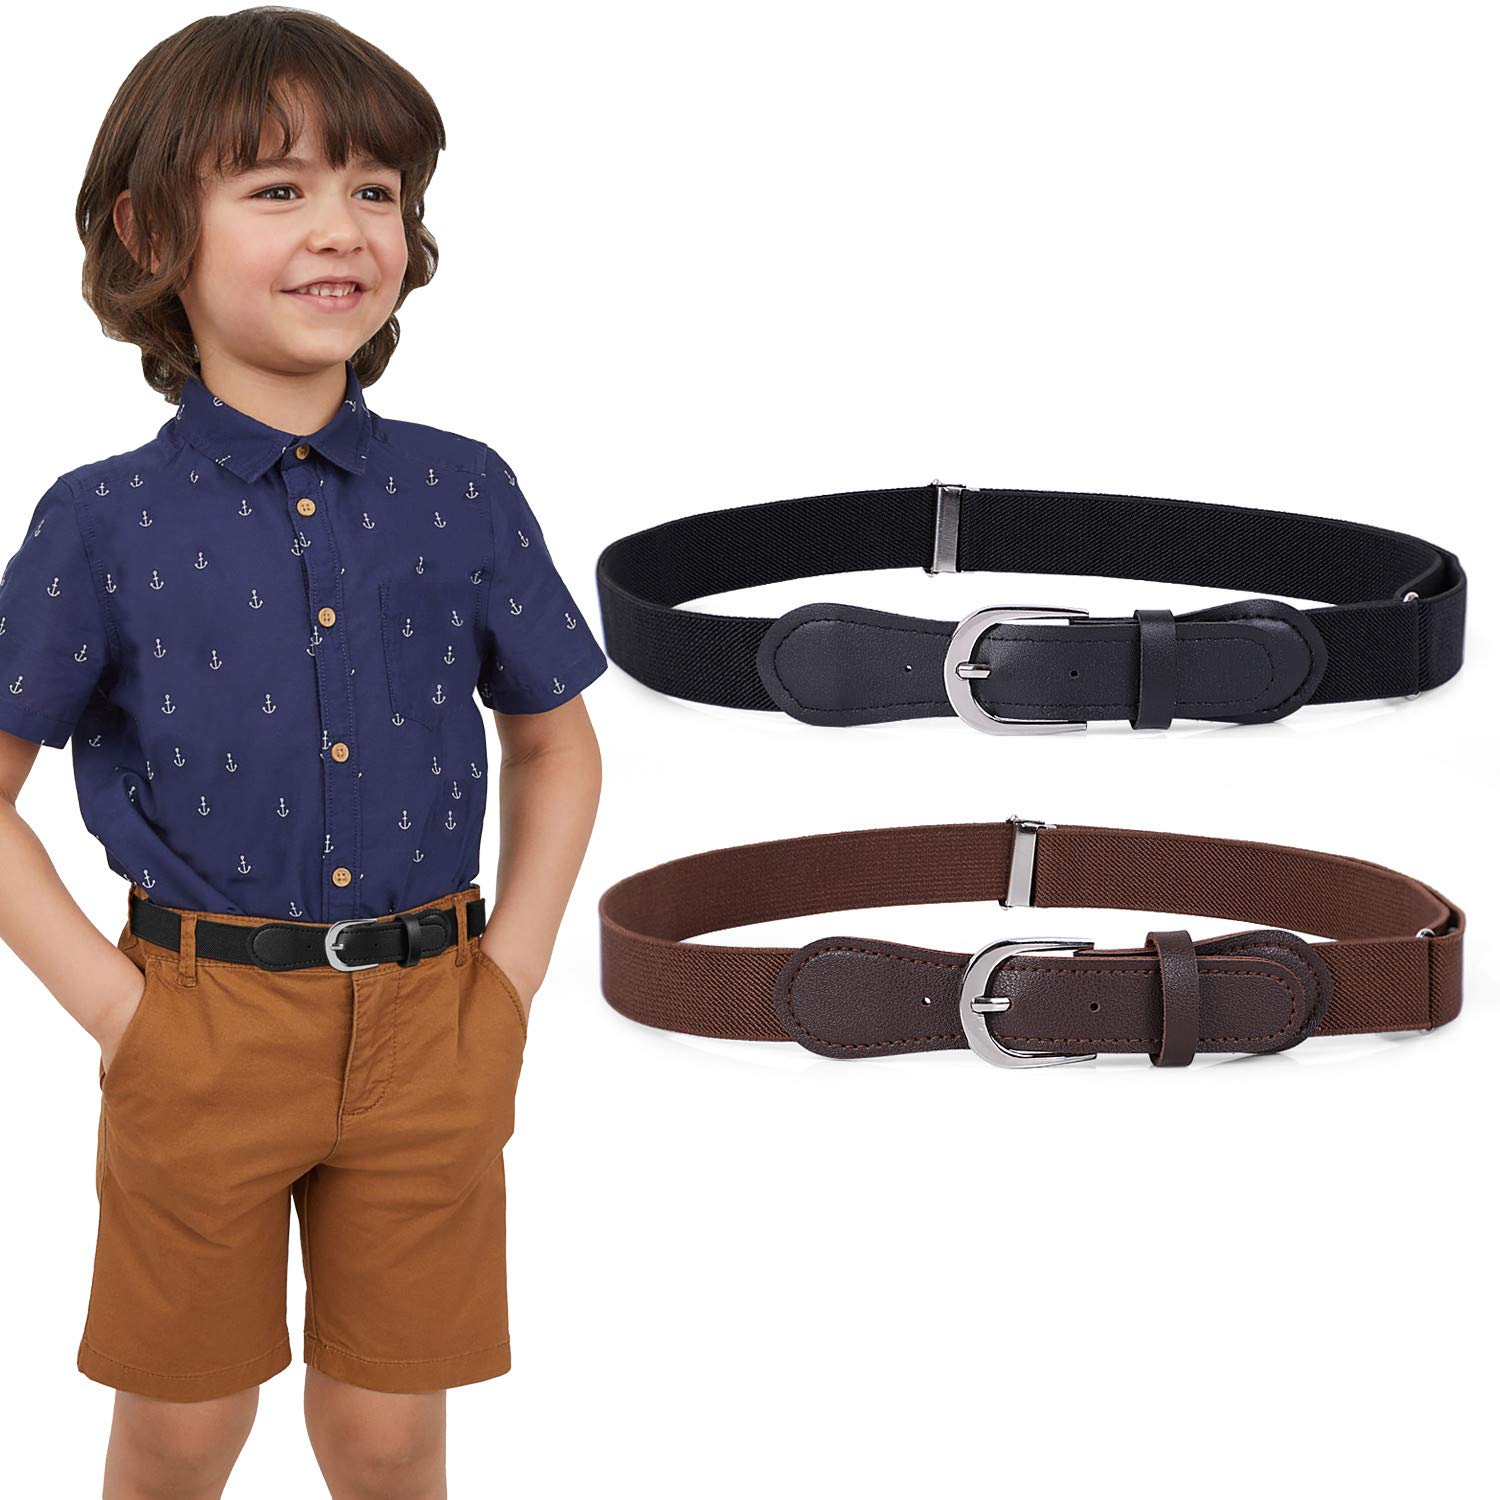 Kids Elastic Adjustable Belts, Stretch Belt for Boys and Girls